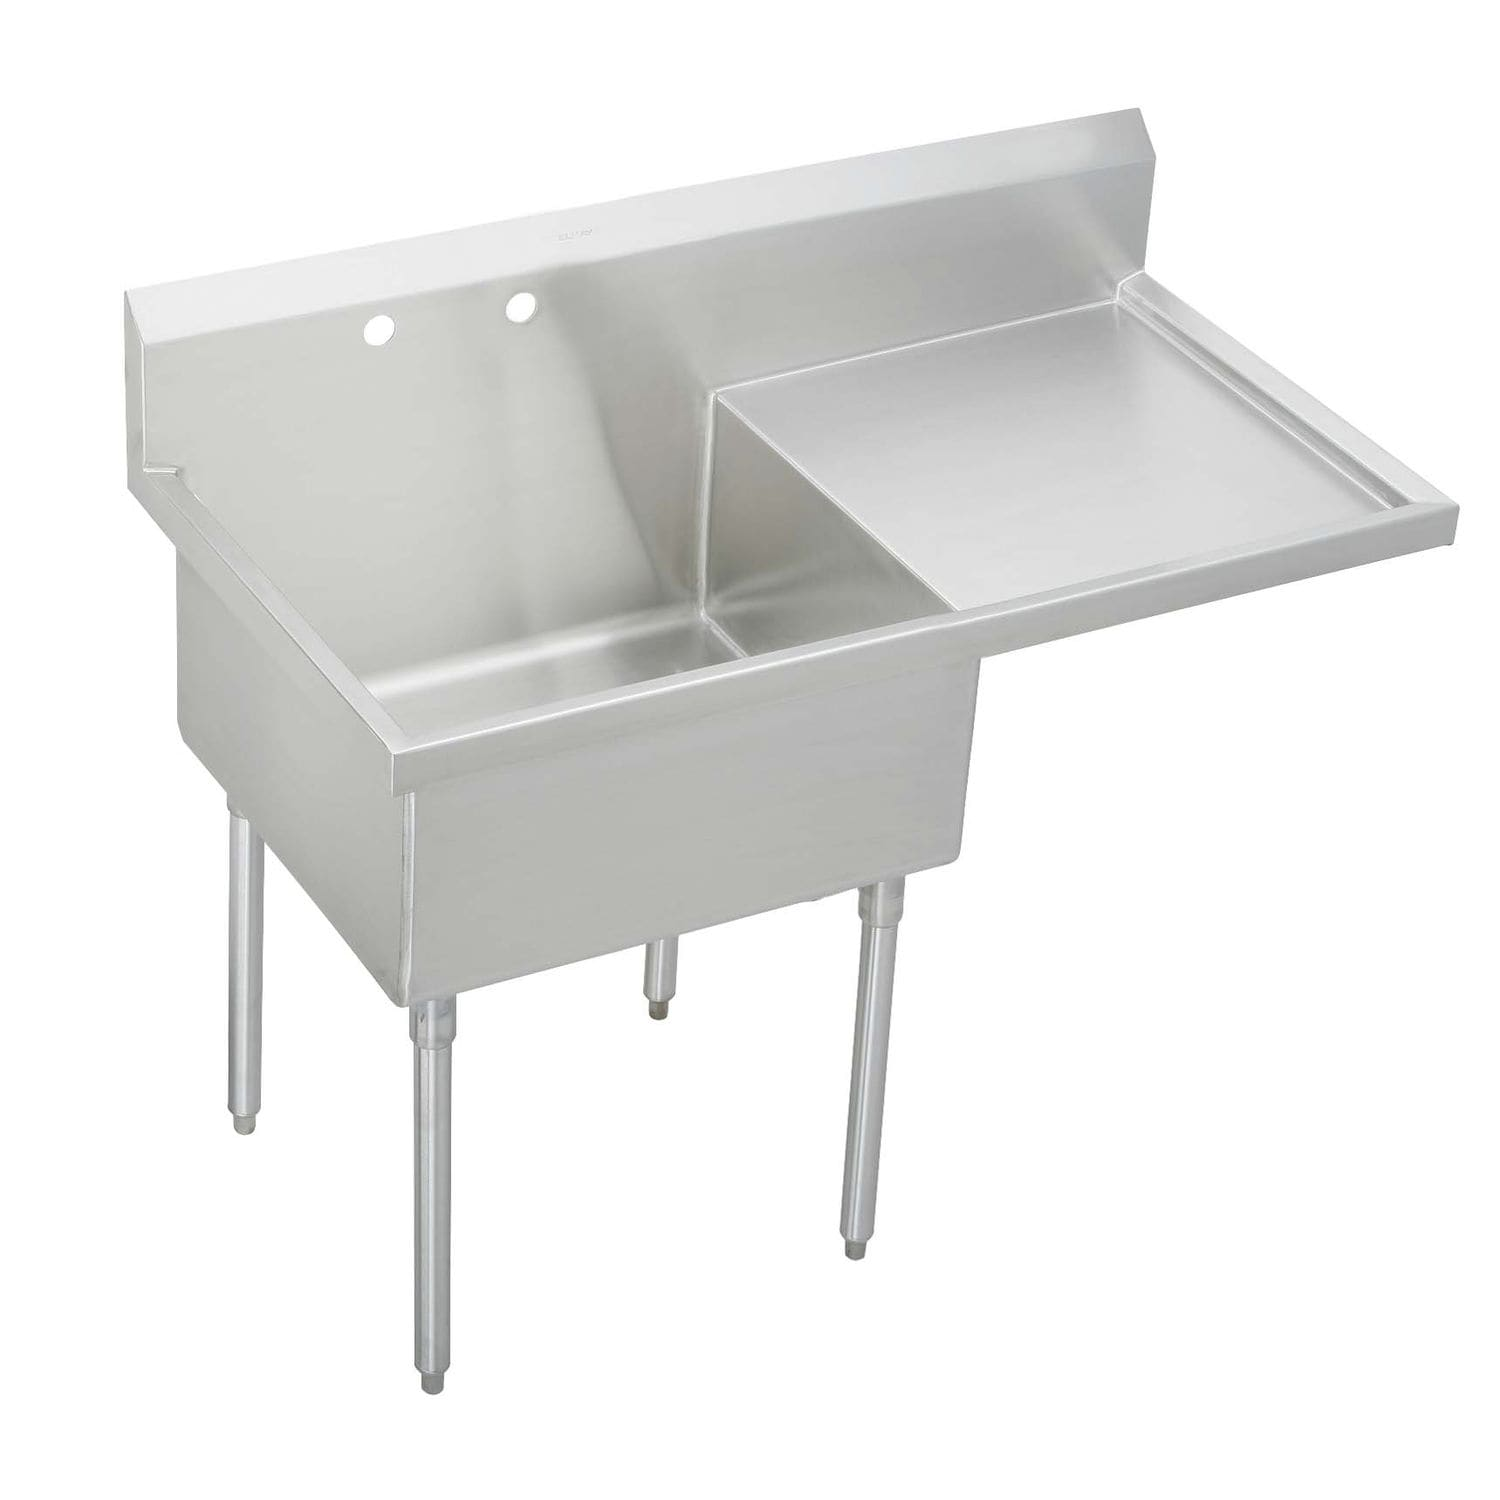 Kitchen Sink For 18 Cabinet Kitchen Sink Cabinet With Legs For Commercial Kitchens